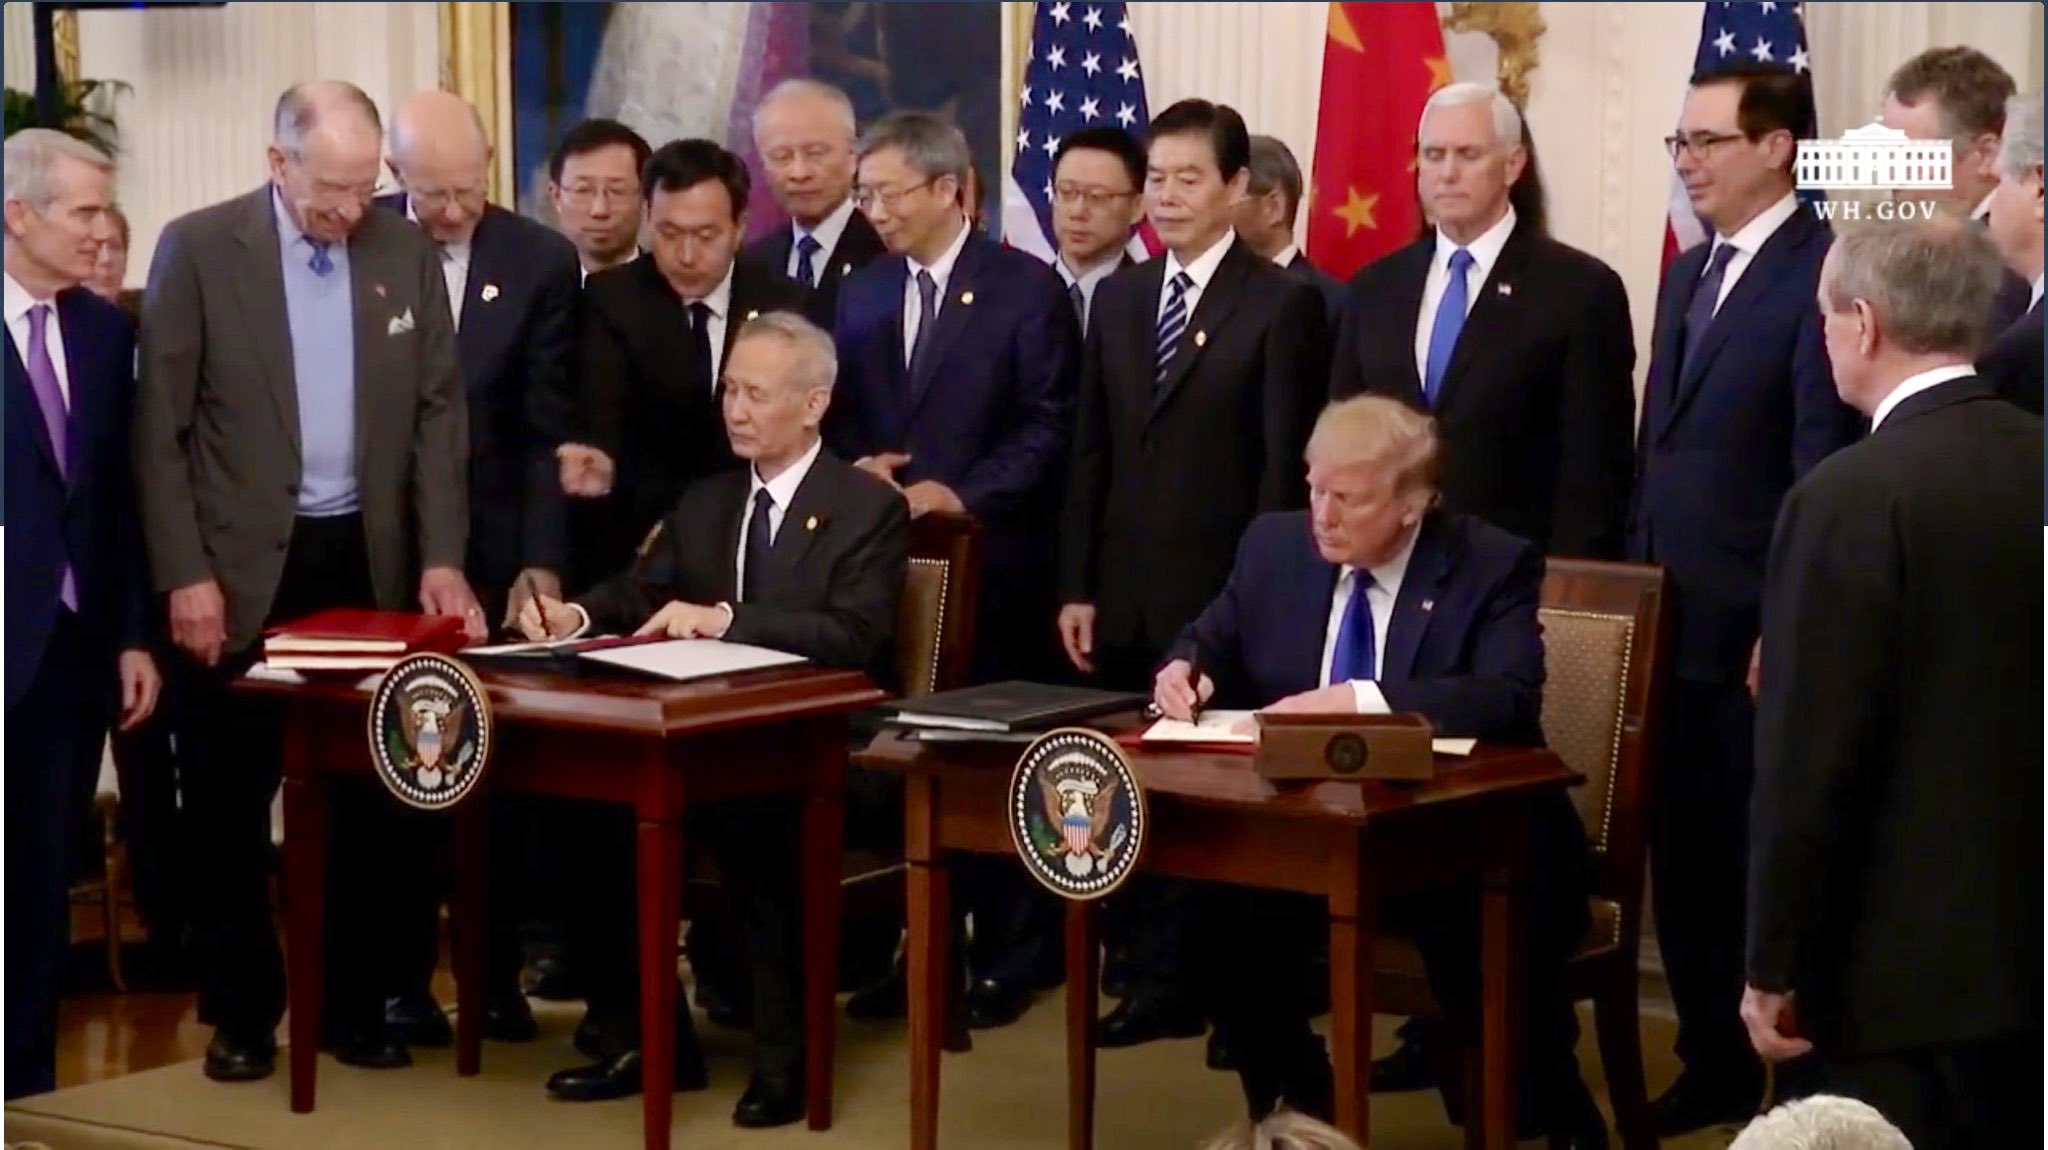 Estados Unidos y China firman acuerdo comercial